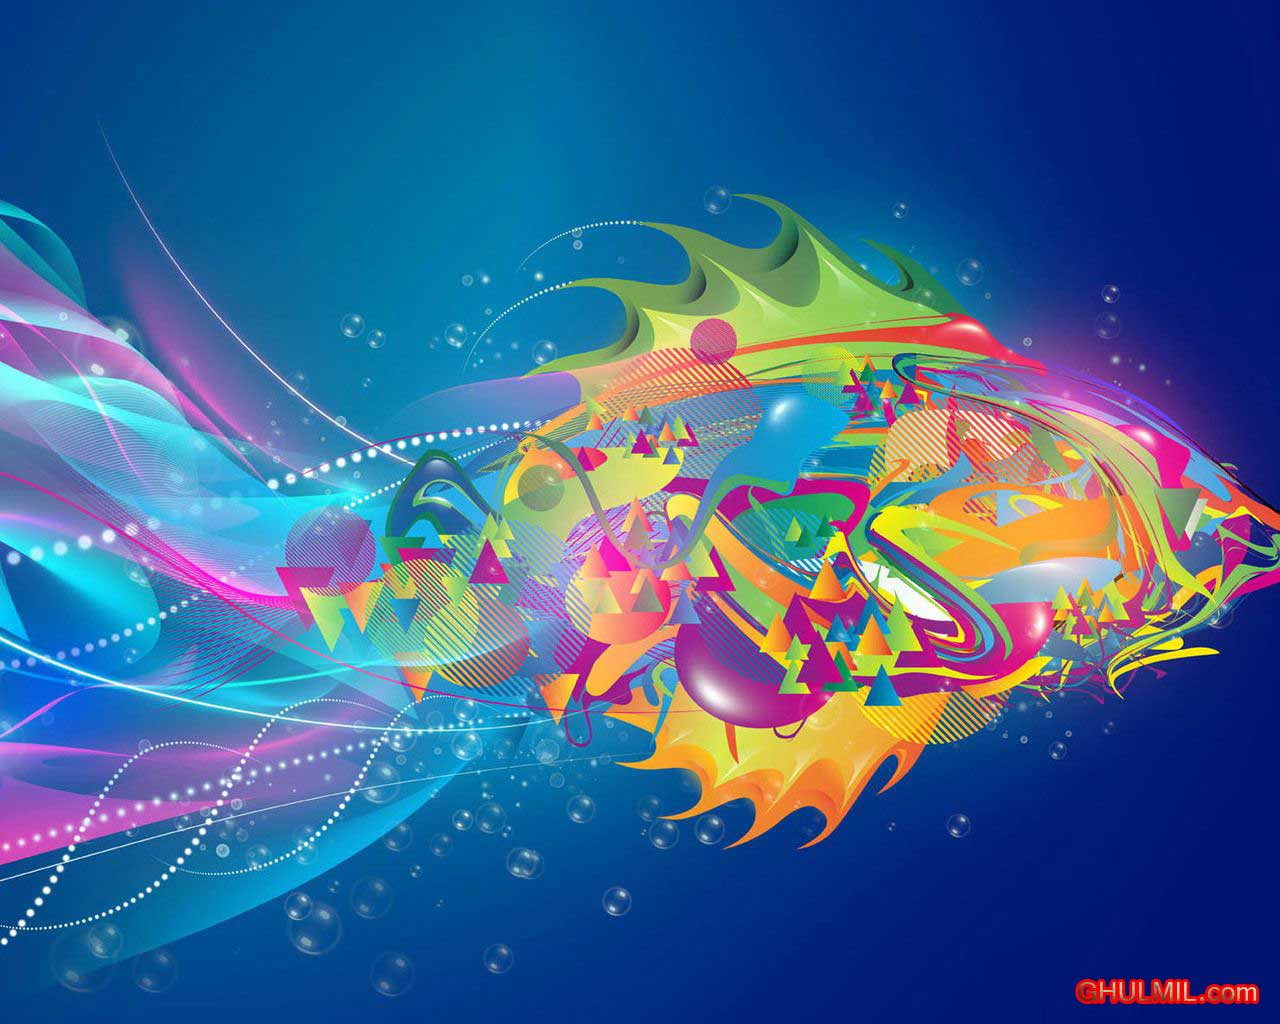 http://2.bp.blogspot.com/_7USjJ9FVDPc/TUBXULmJaxI/AAAAAAAAARs/uYdzSCRzVkE/s1600/free-download-colorful-fish-wallpaper.jpg